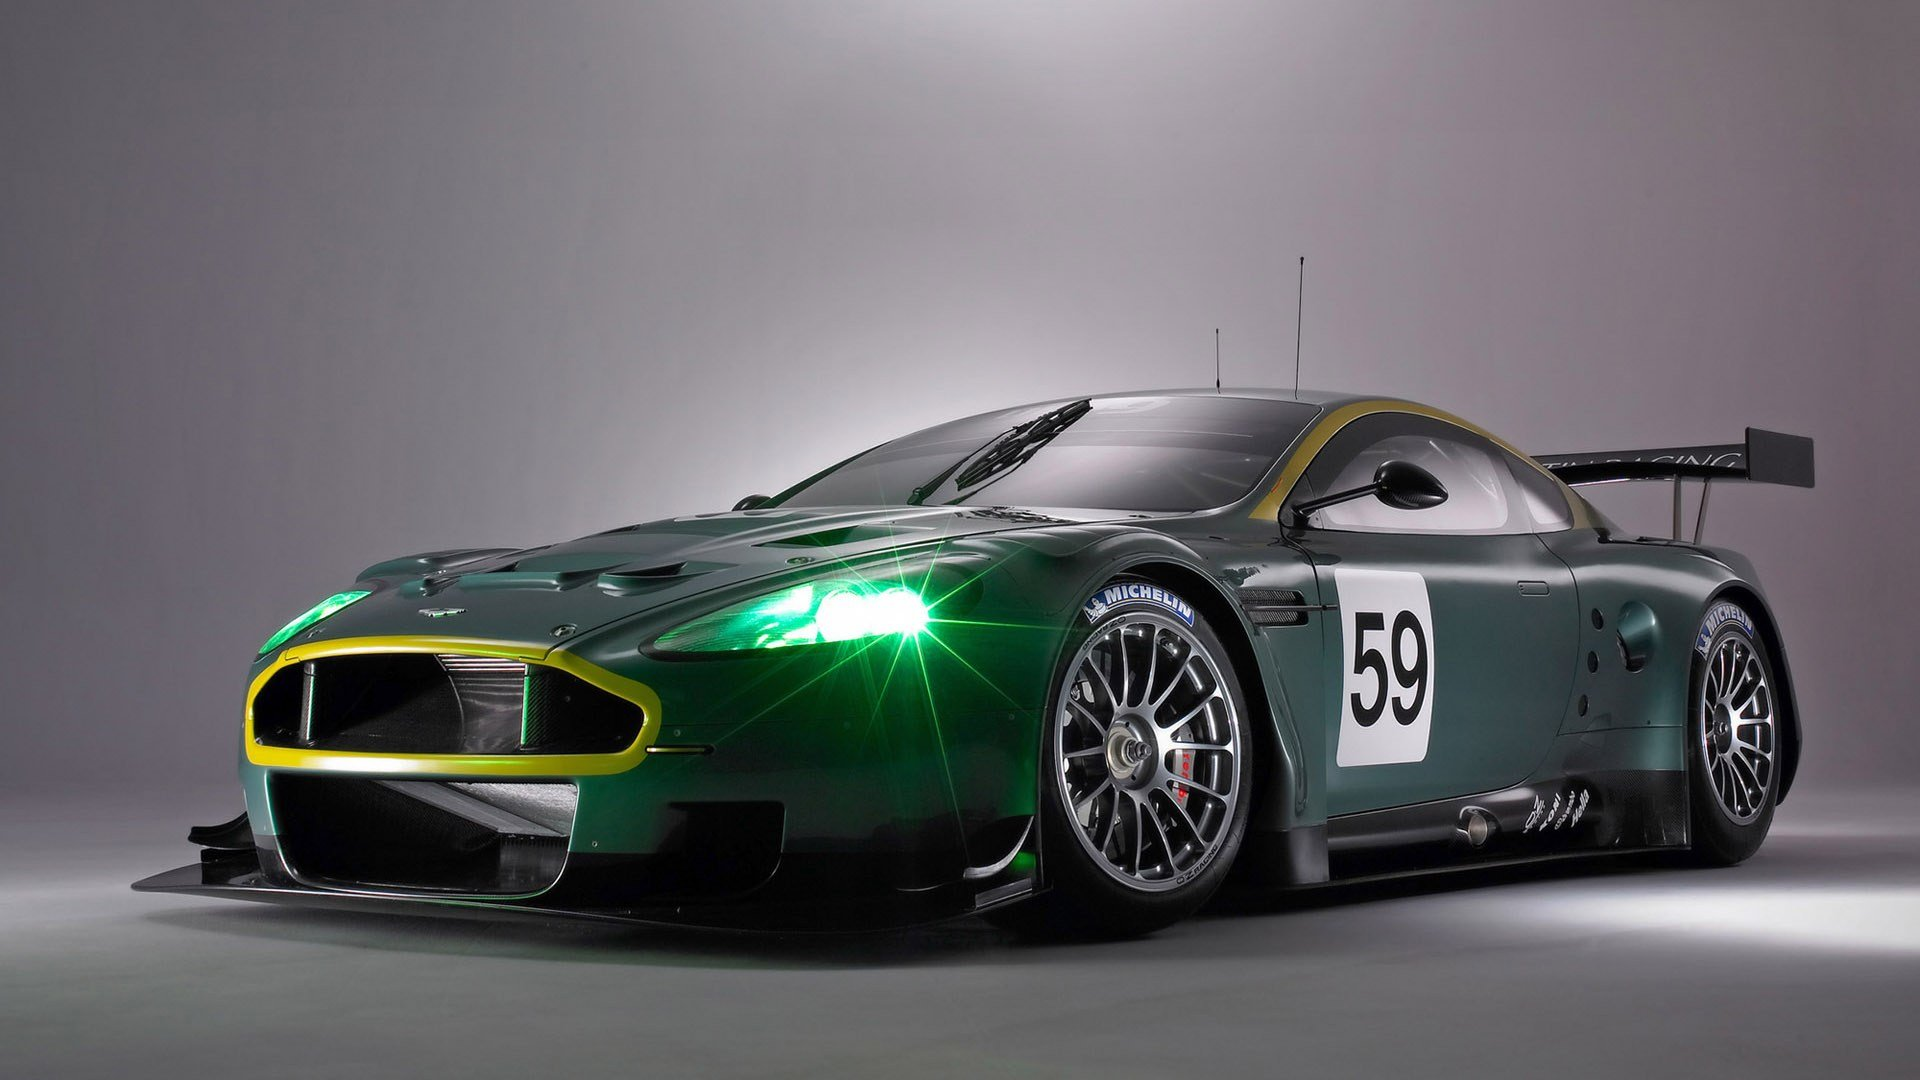 Latest Aston Martin Wallpaper Hd Wallpapers Plus Free Download